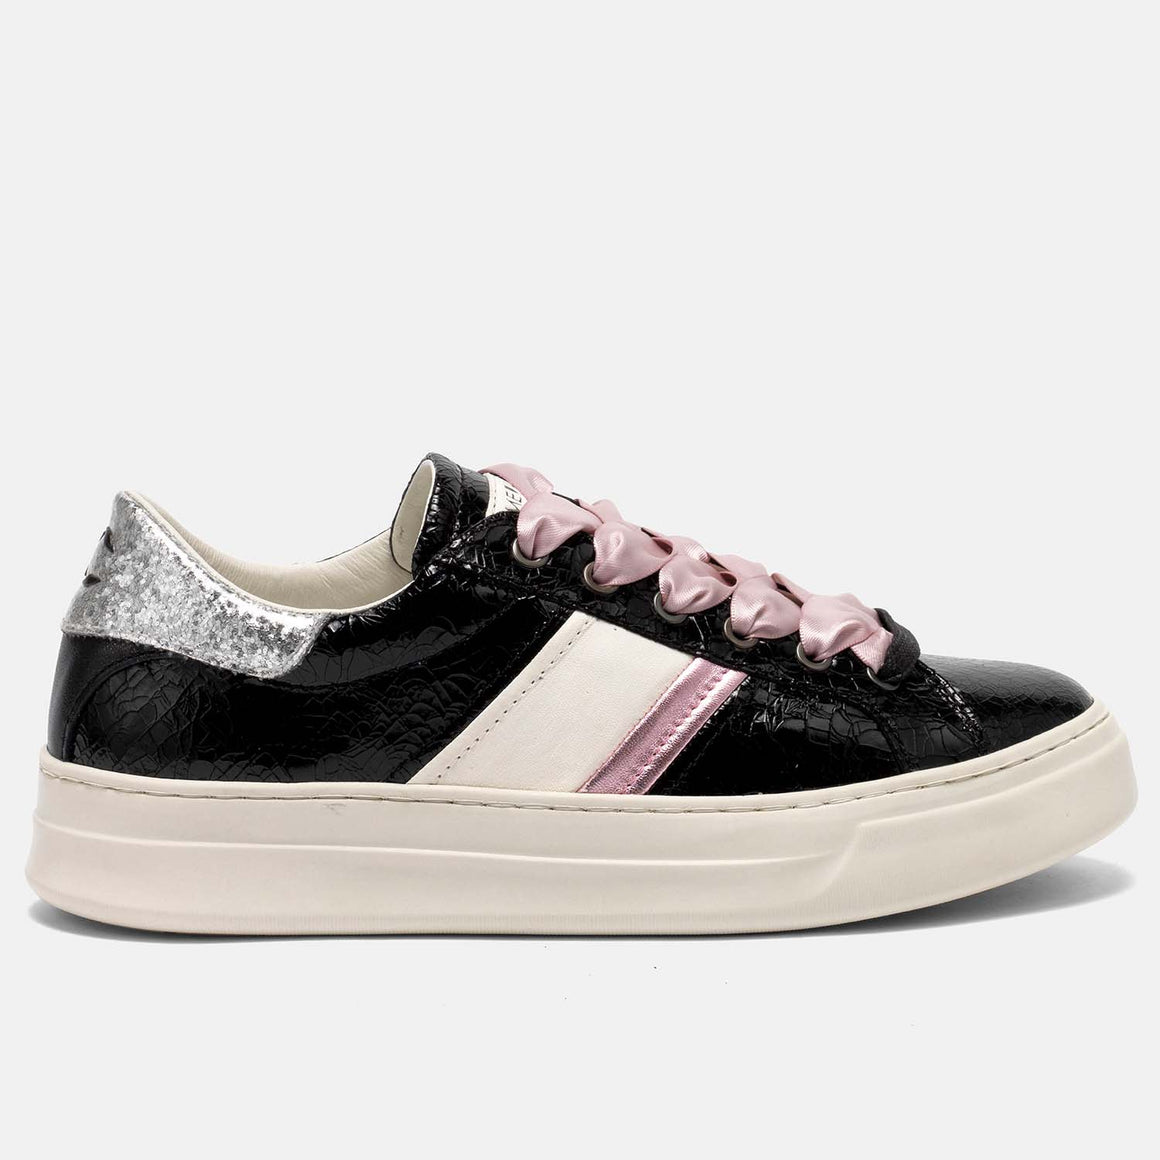 CRIME LONDON 25544 CROC DETAIL LOW TOP SNEAKER